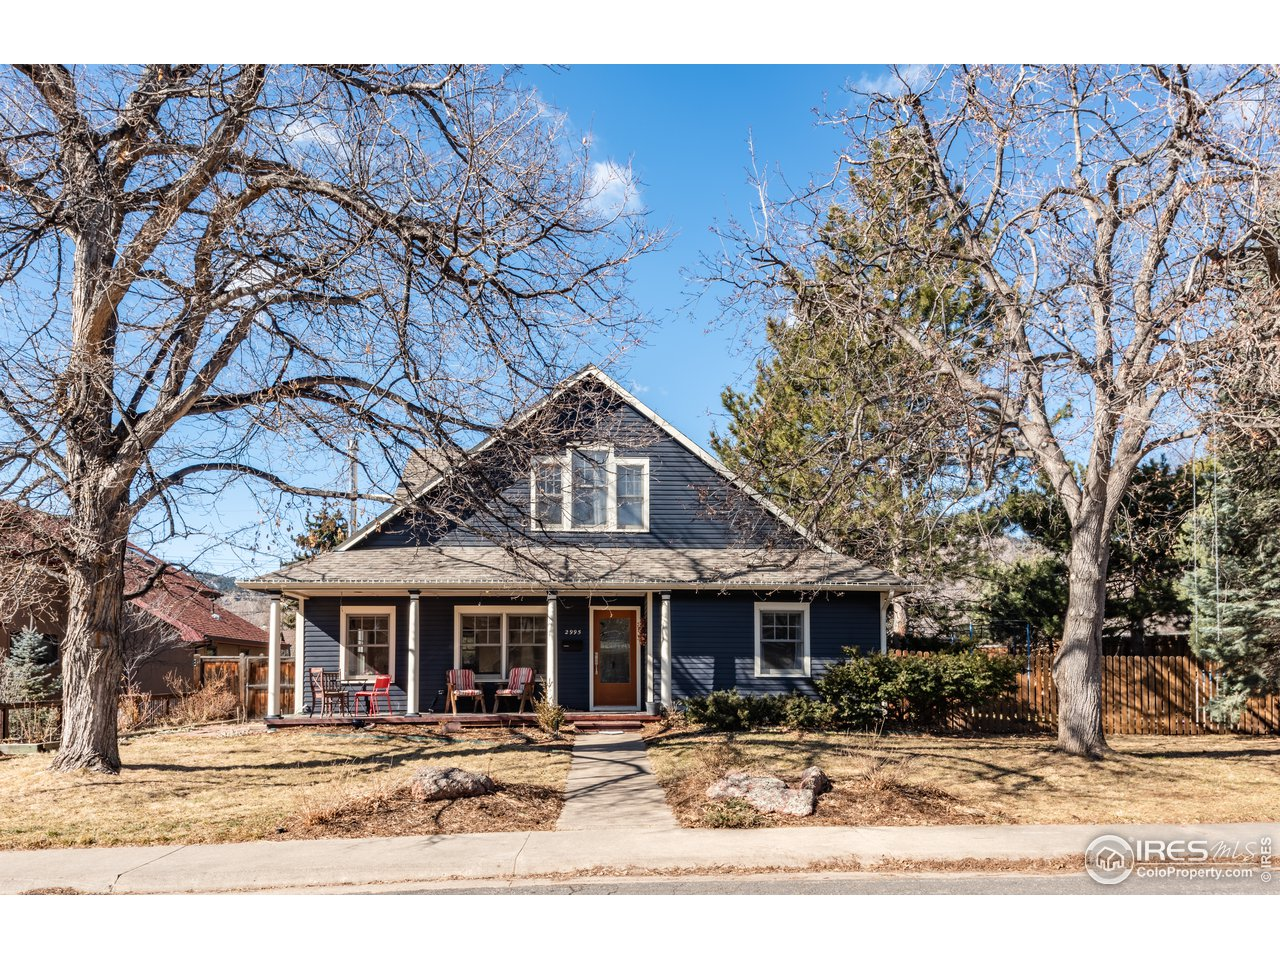 2995 Jefferson St, Boulder CO 80304